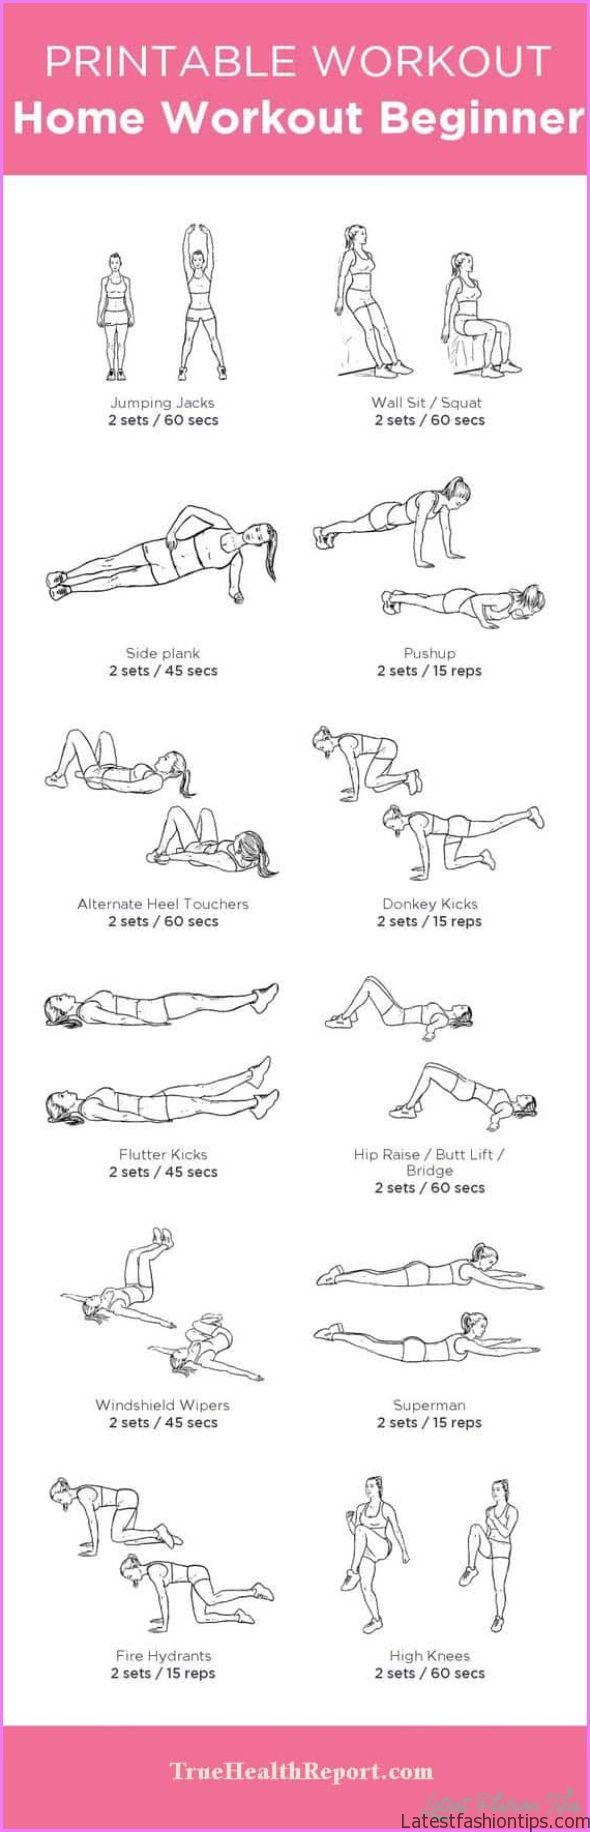 Weight Loss Exercises For Beginners 0 Jpg